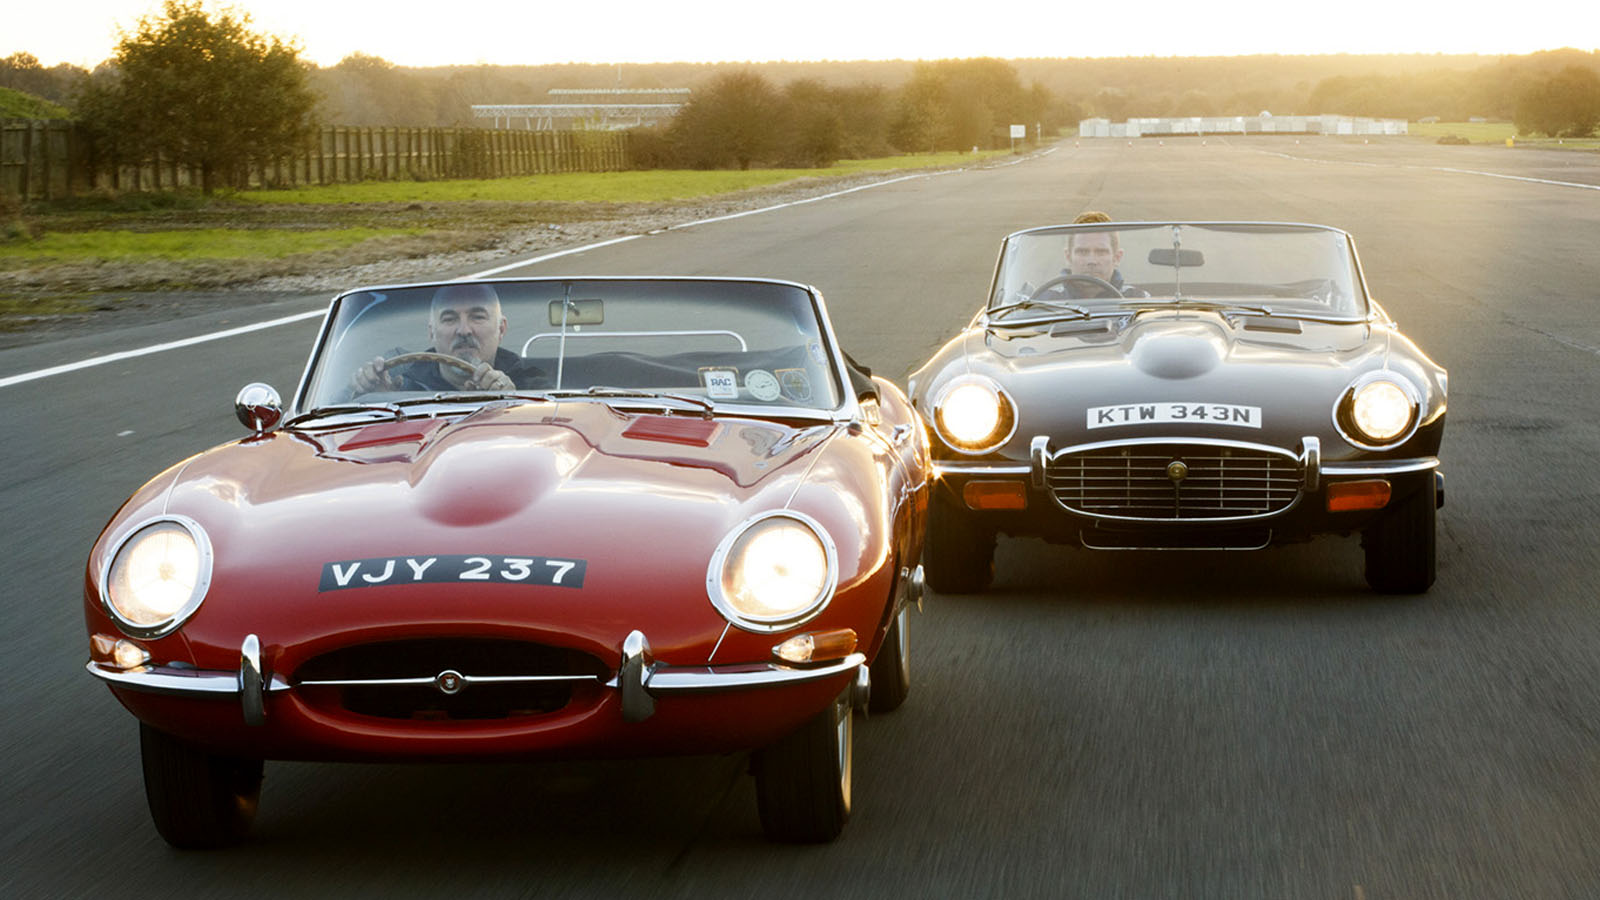 Two Classic Jaguars Driving On A Track With Headlights On.